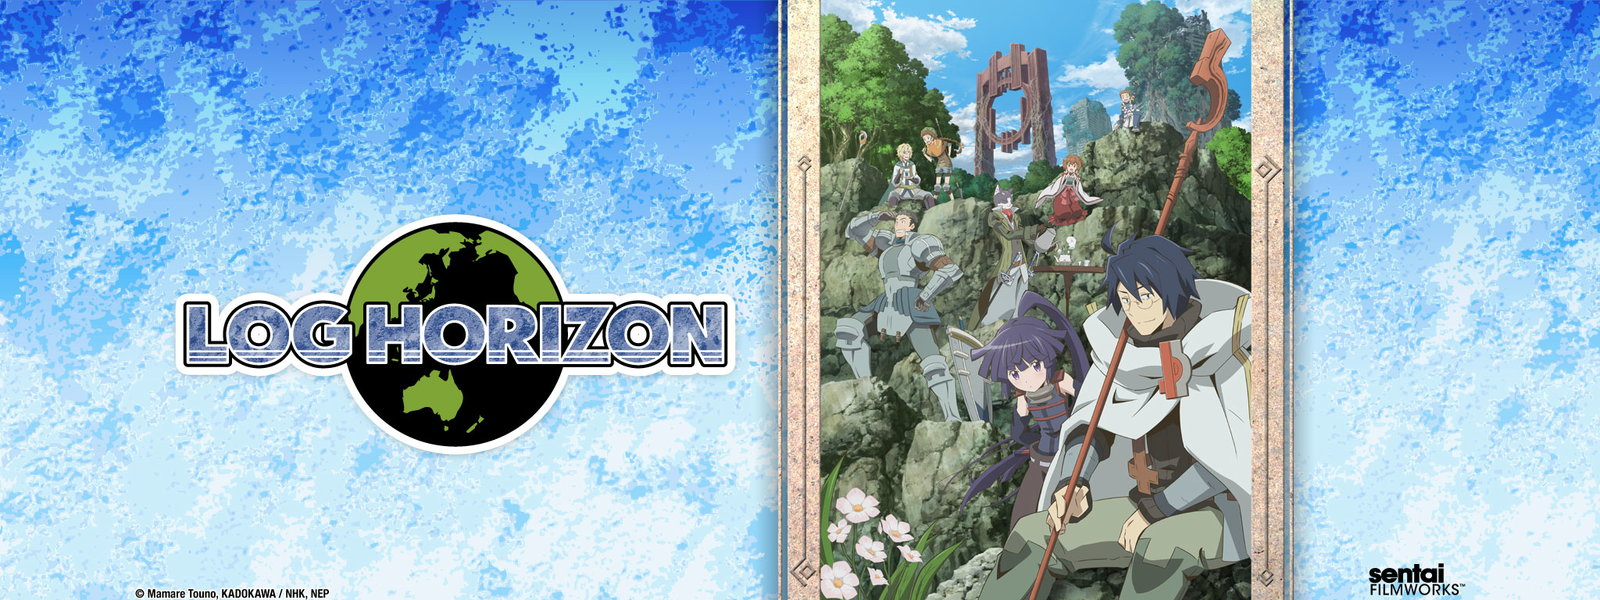 Log horizon light novel epub